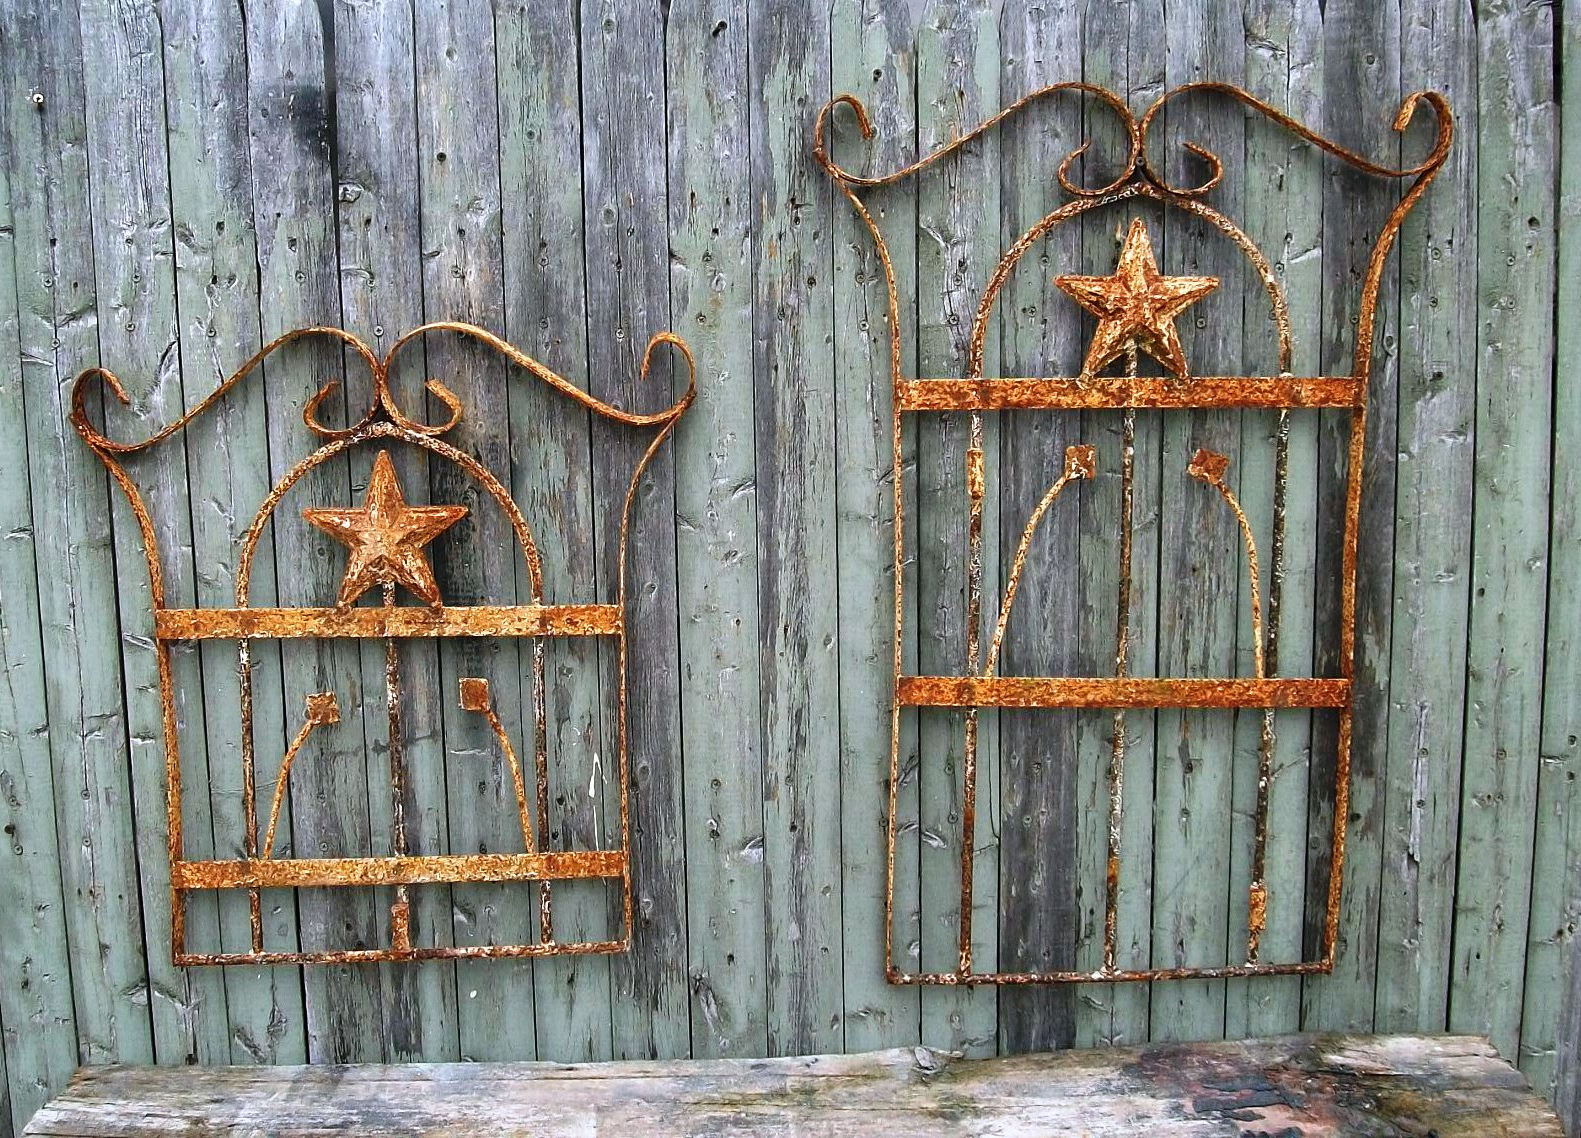 Ornamental Wood And Metal Scroll Wall Decor Pertaining To Recent Wrought Iron Outdoor Wall Decor Style (View 11 of 20)